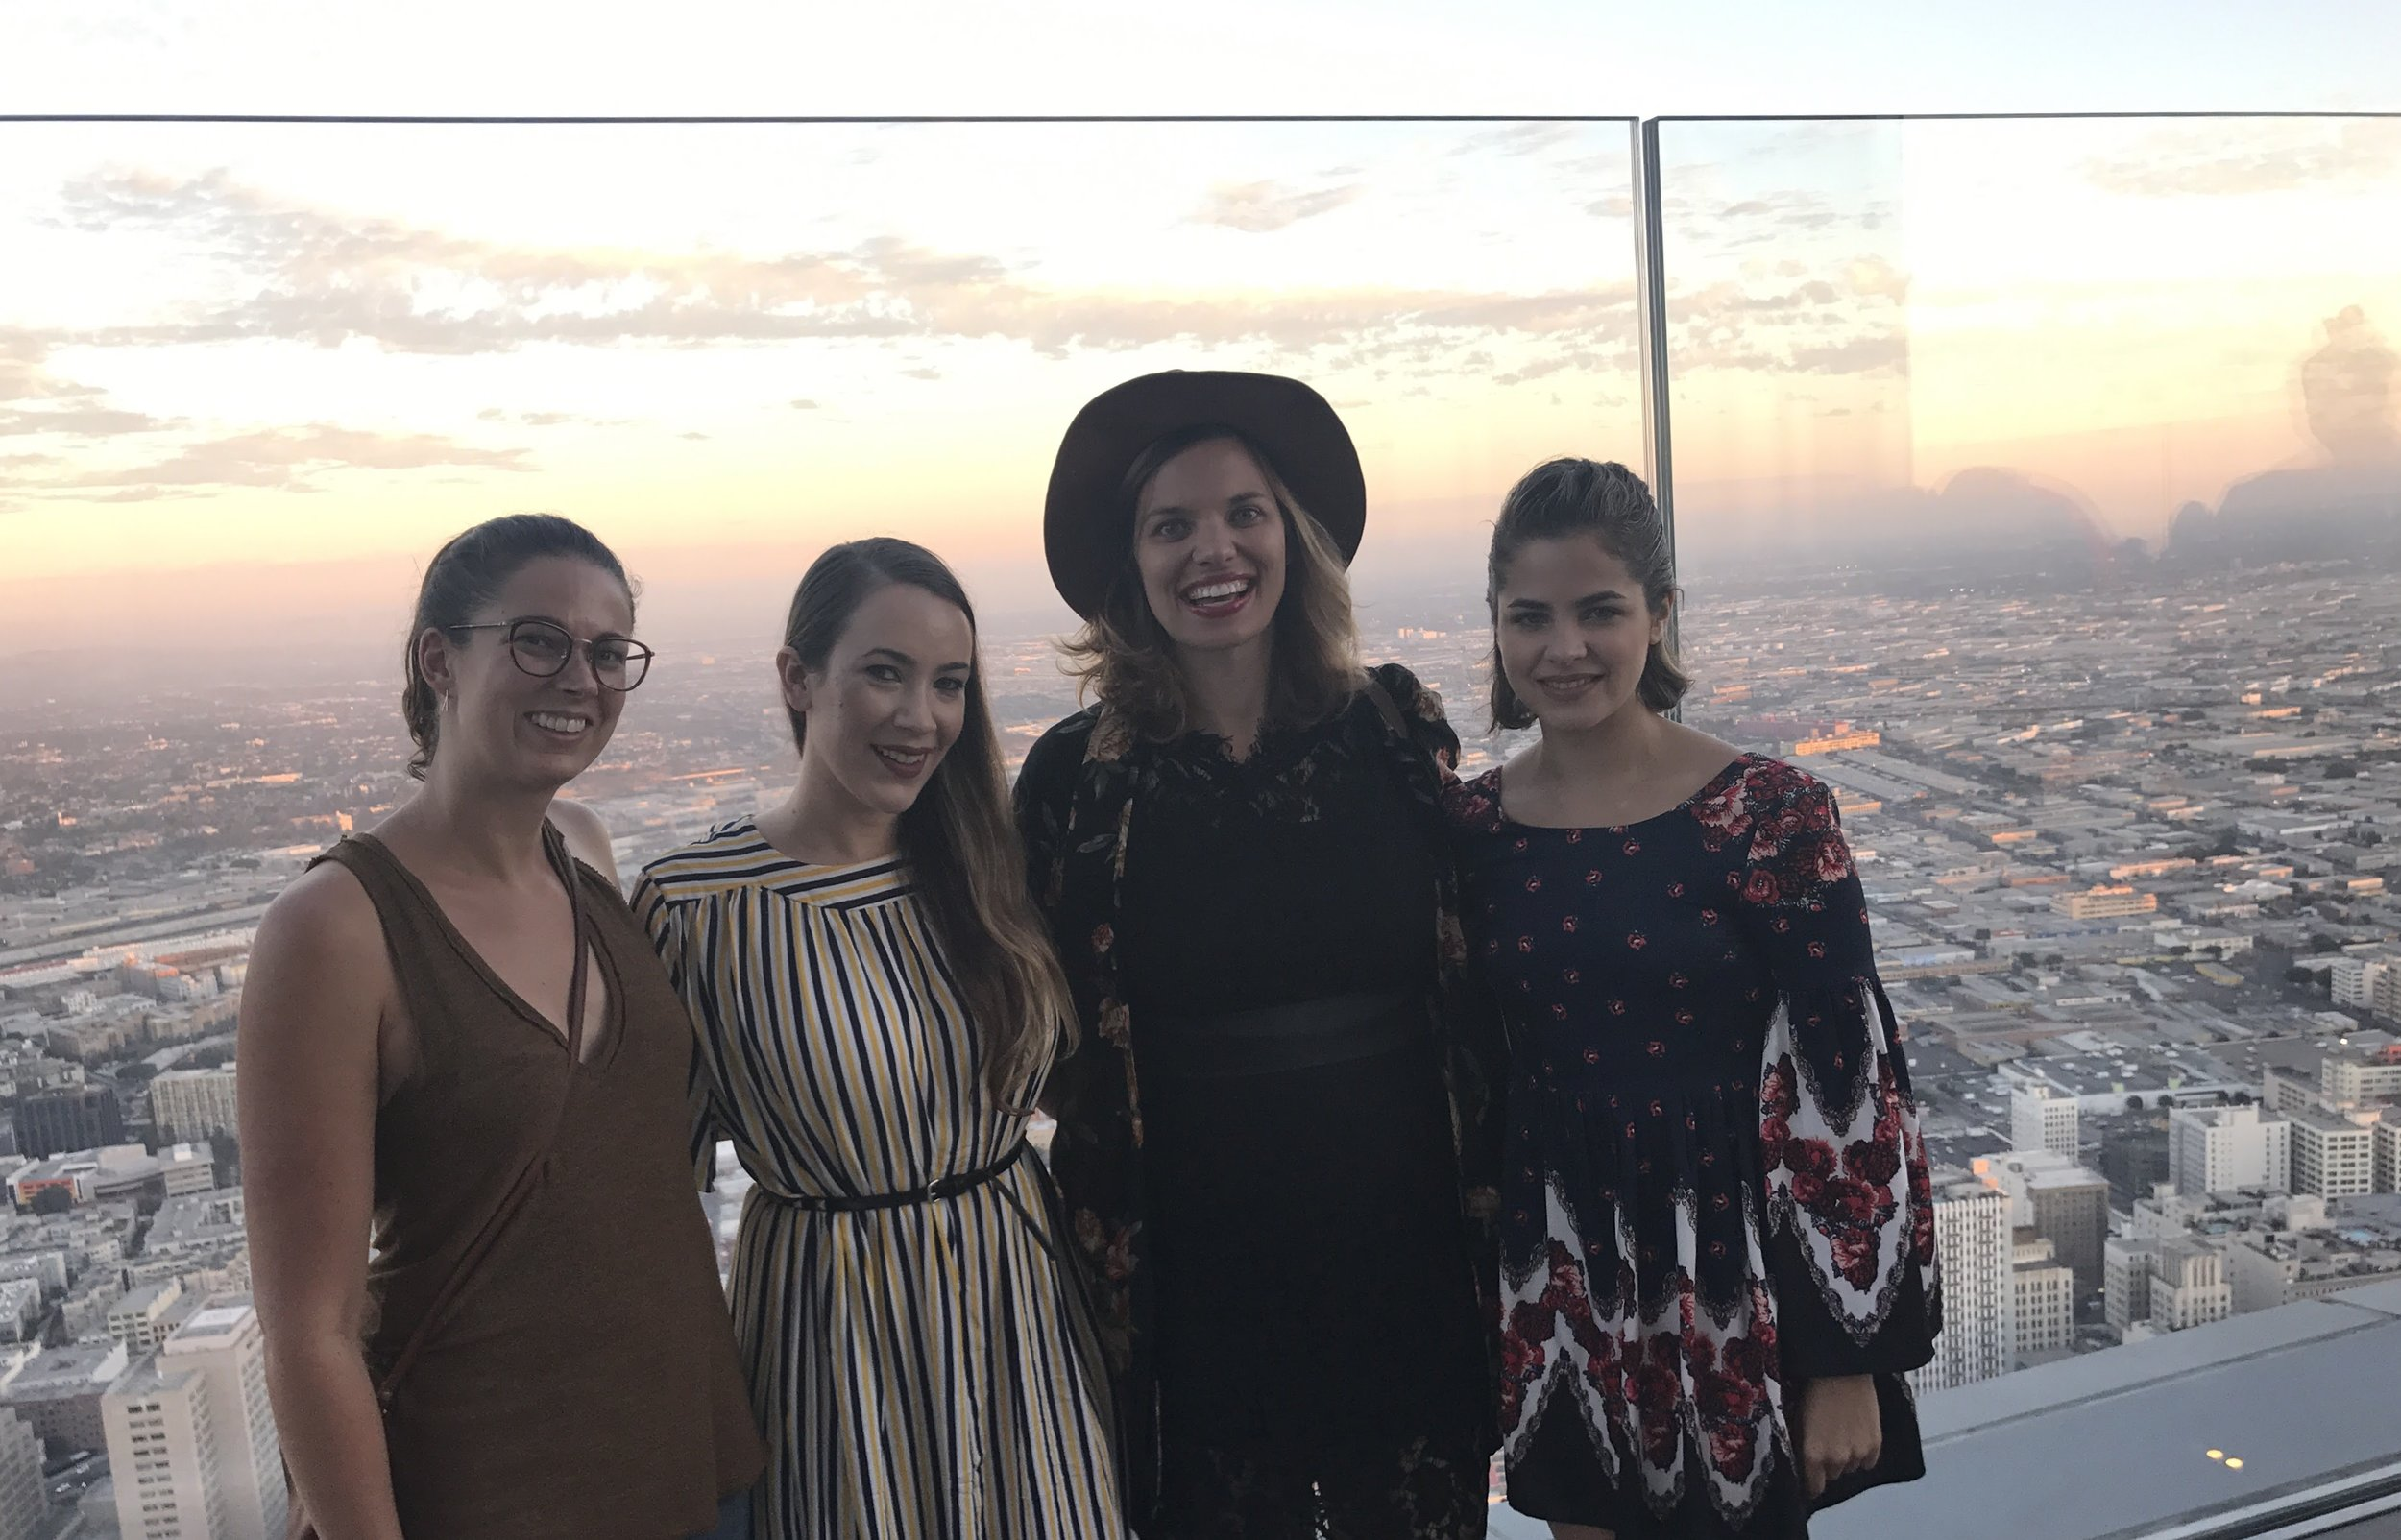 Here's a photo of most of our team at a recent event at the SkySpace in DTLA!